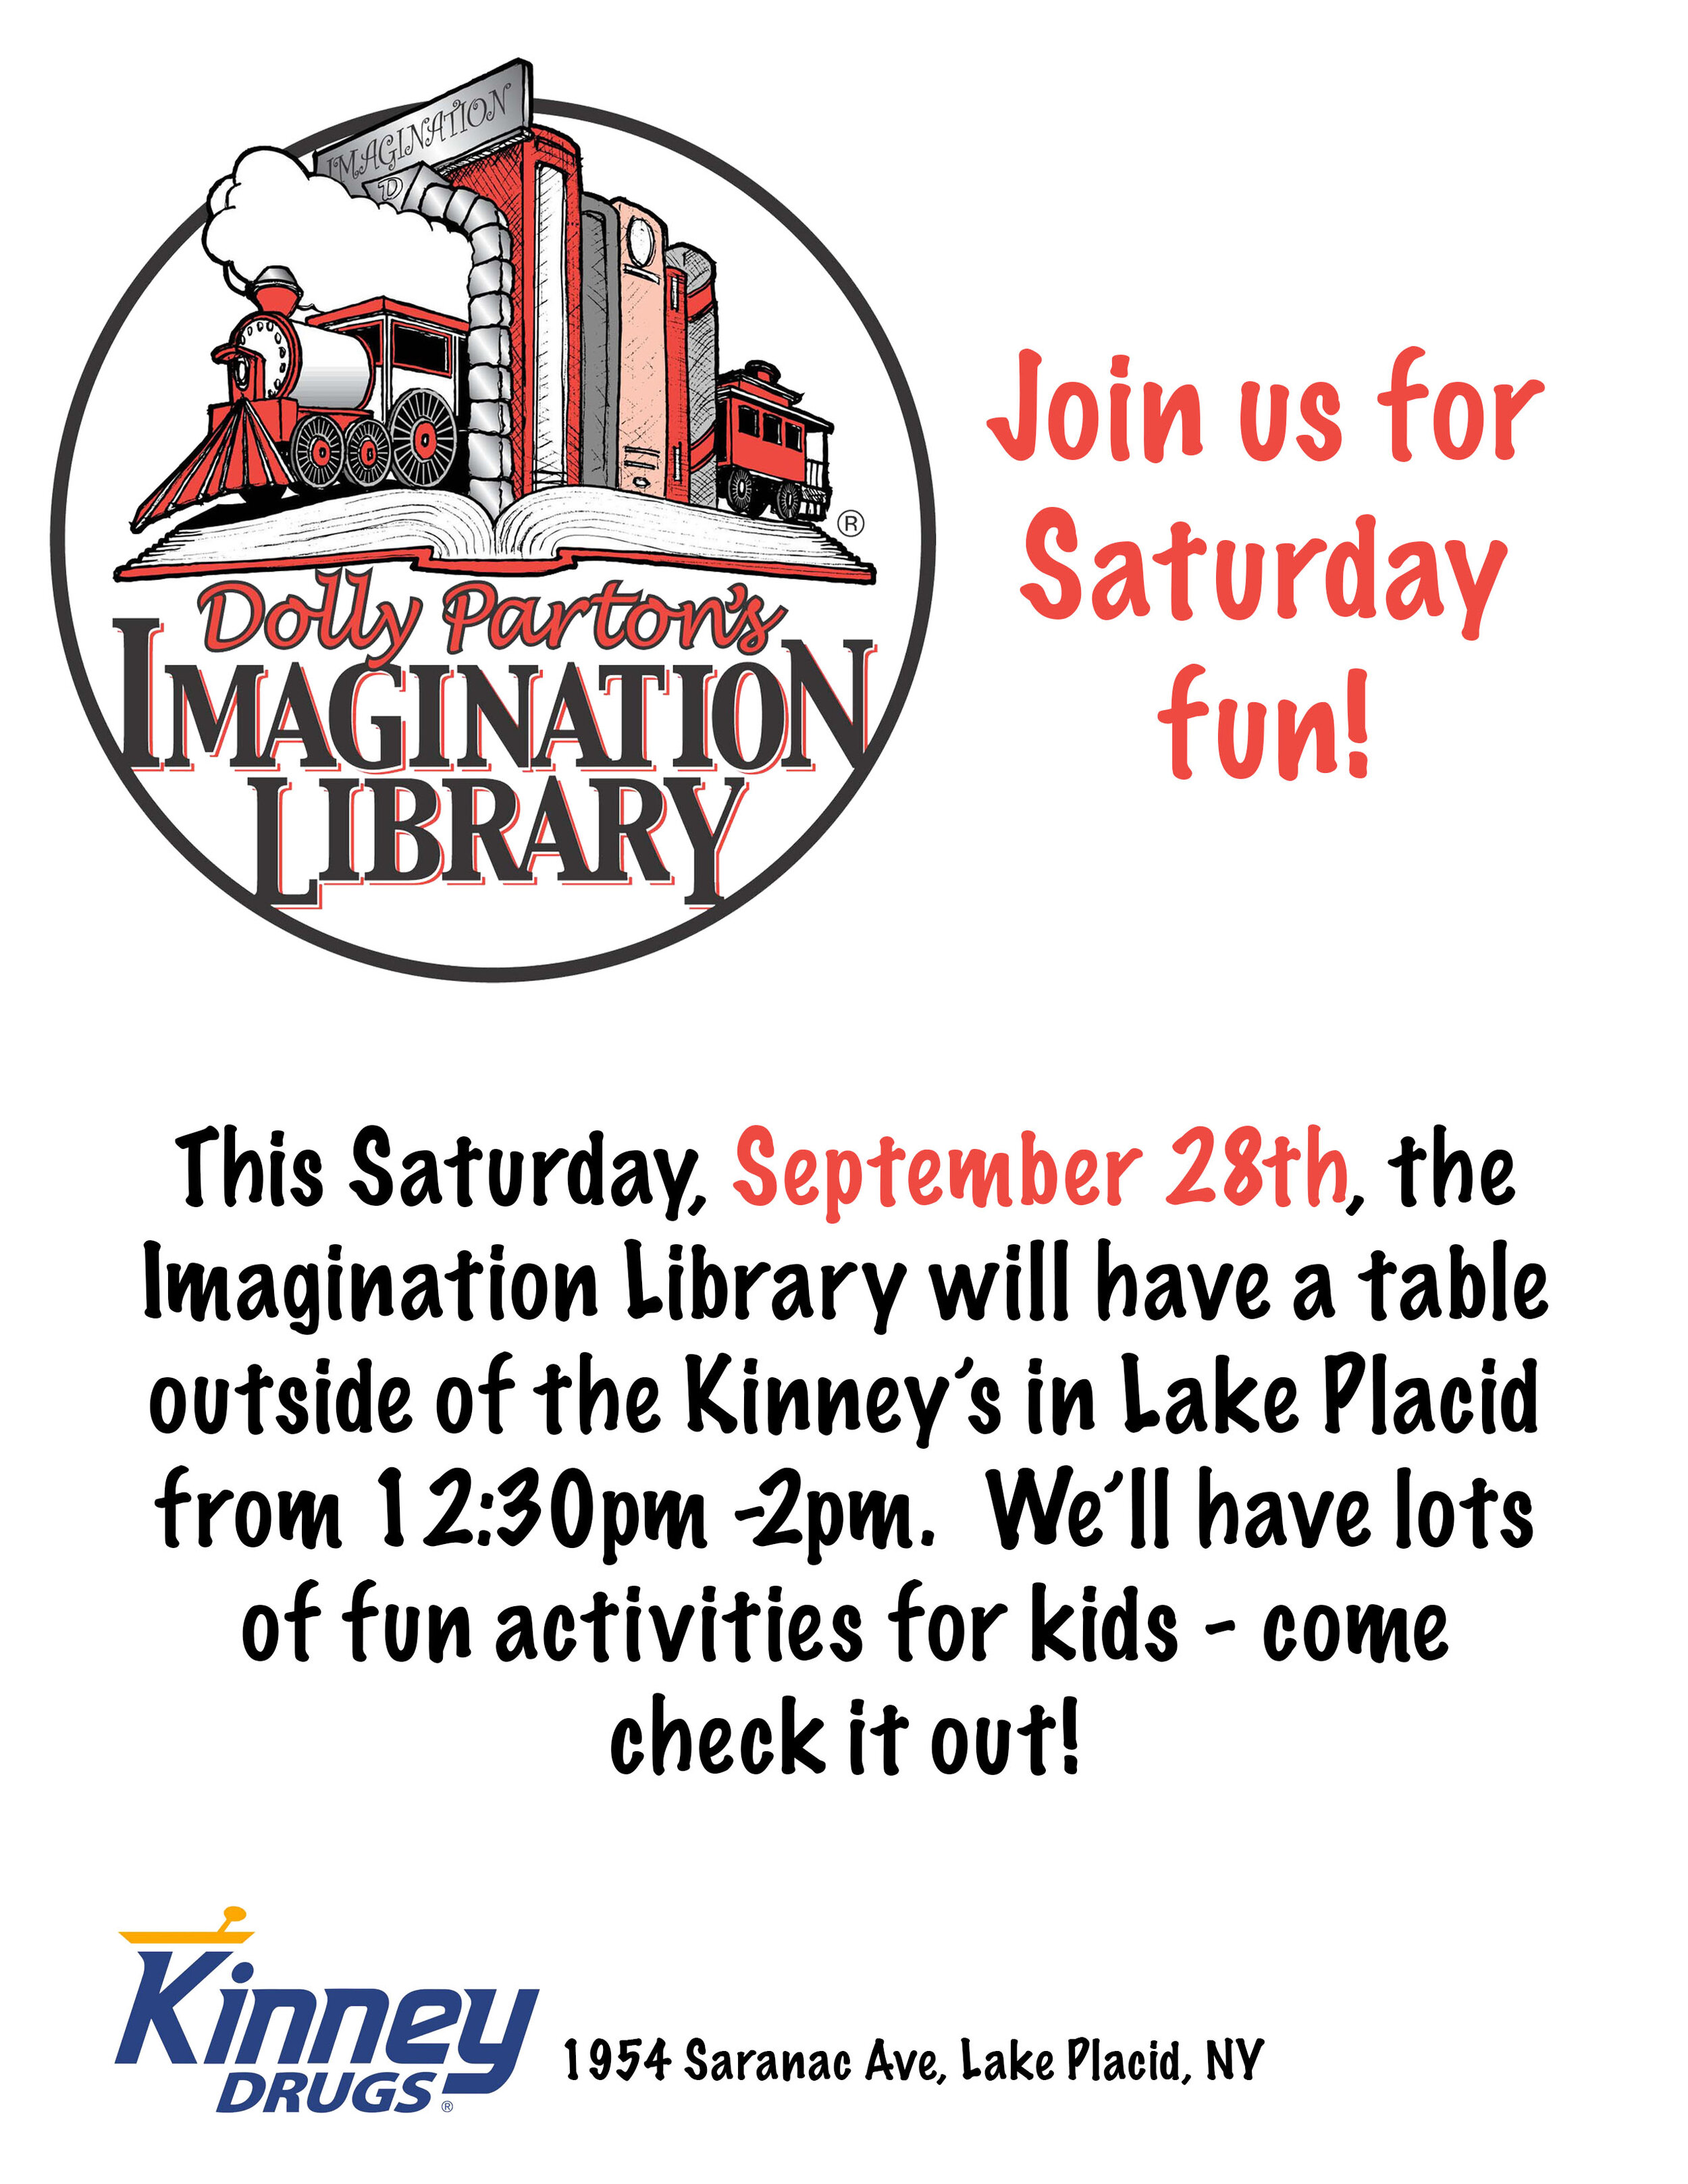 9/28/19: Imagination Library Event - This Saturday, September 28th, the Imagination Library will have a table outside of the Kinney's in Lake Placid from 12:30pm -2pm. We'll have lots of fun activities for kids - come check it out!